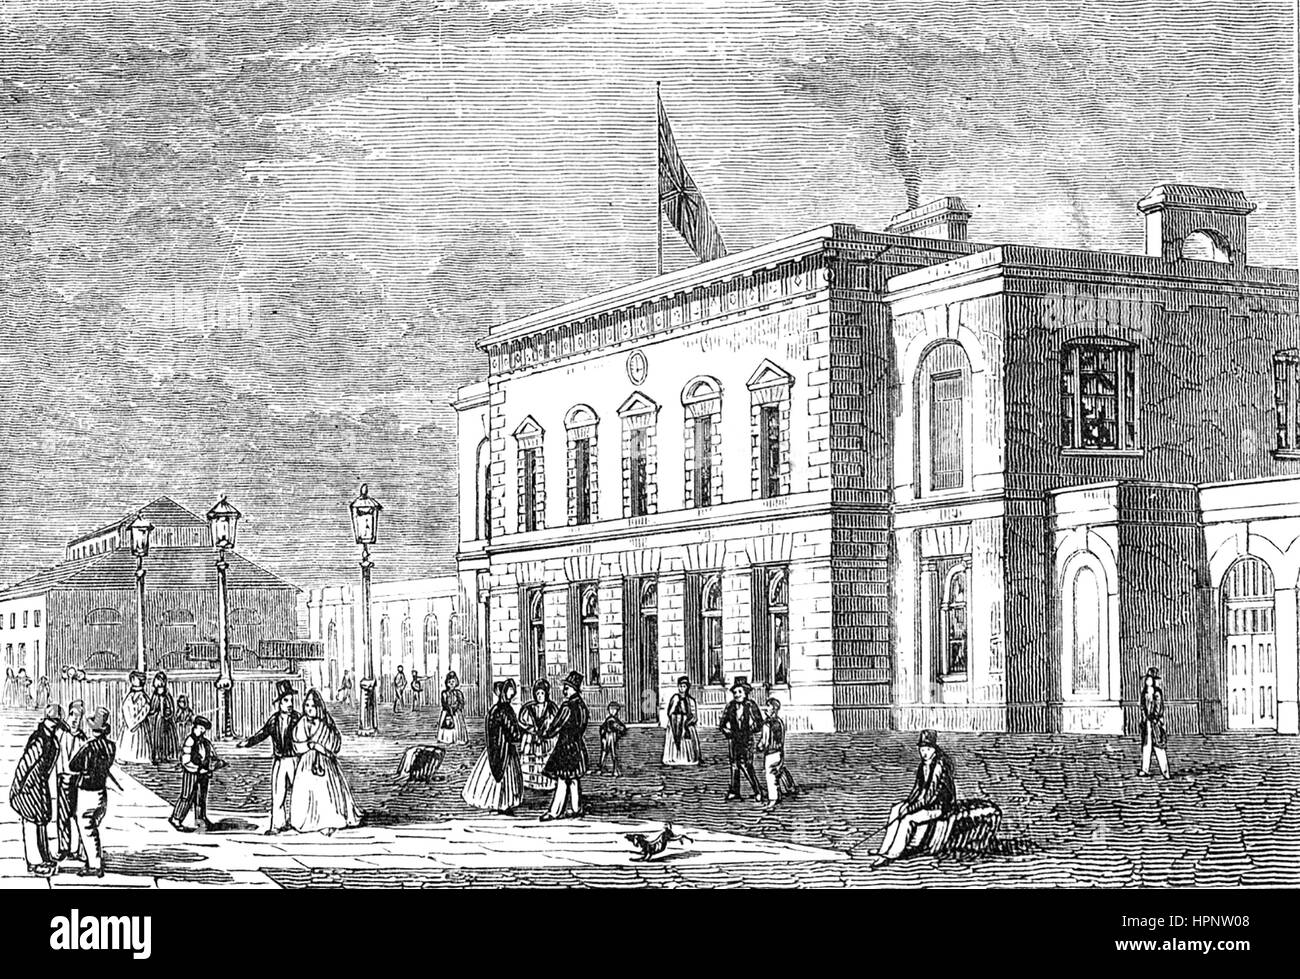 BLACKWALL RAILWAY STATION, London,  in 1858. Designed by William Tite it opened in 1840 - Stock Image